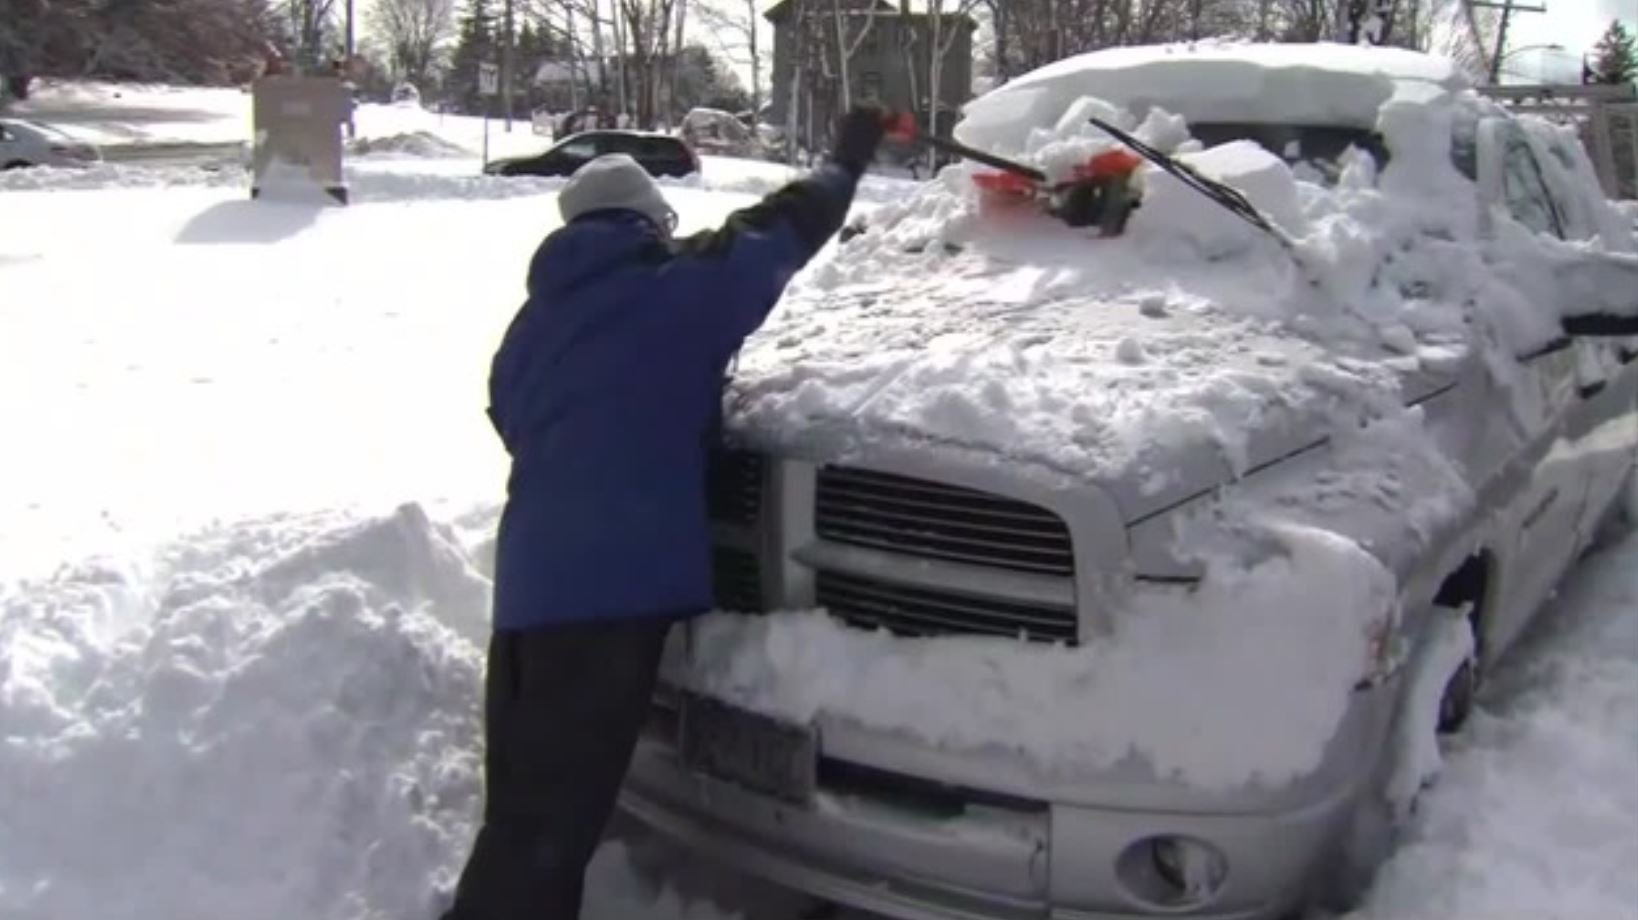 On Wednesday, March 14, a resident of Methuen, MA, clears away snow that fell as the result of a nor'easter moving along the Atlantic coast. (Source: WBZ/CNN)